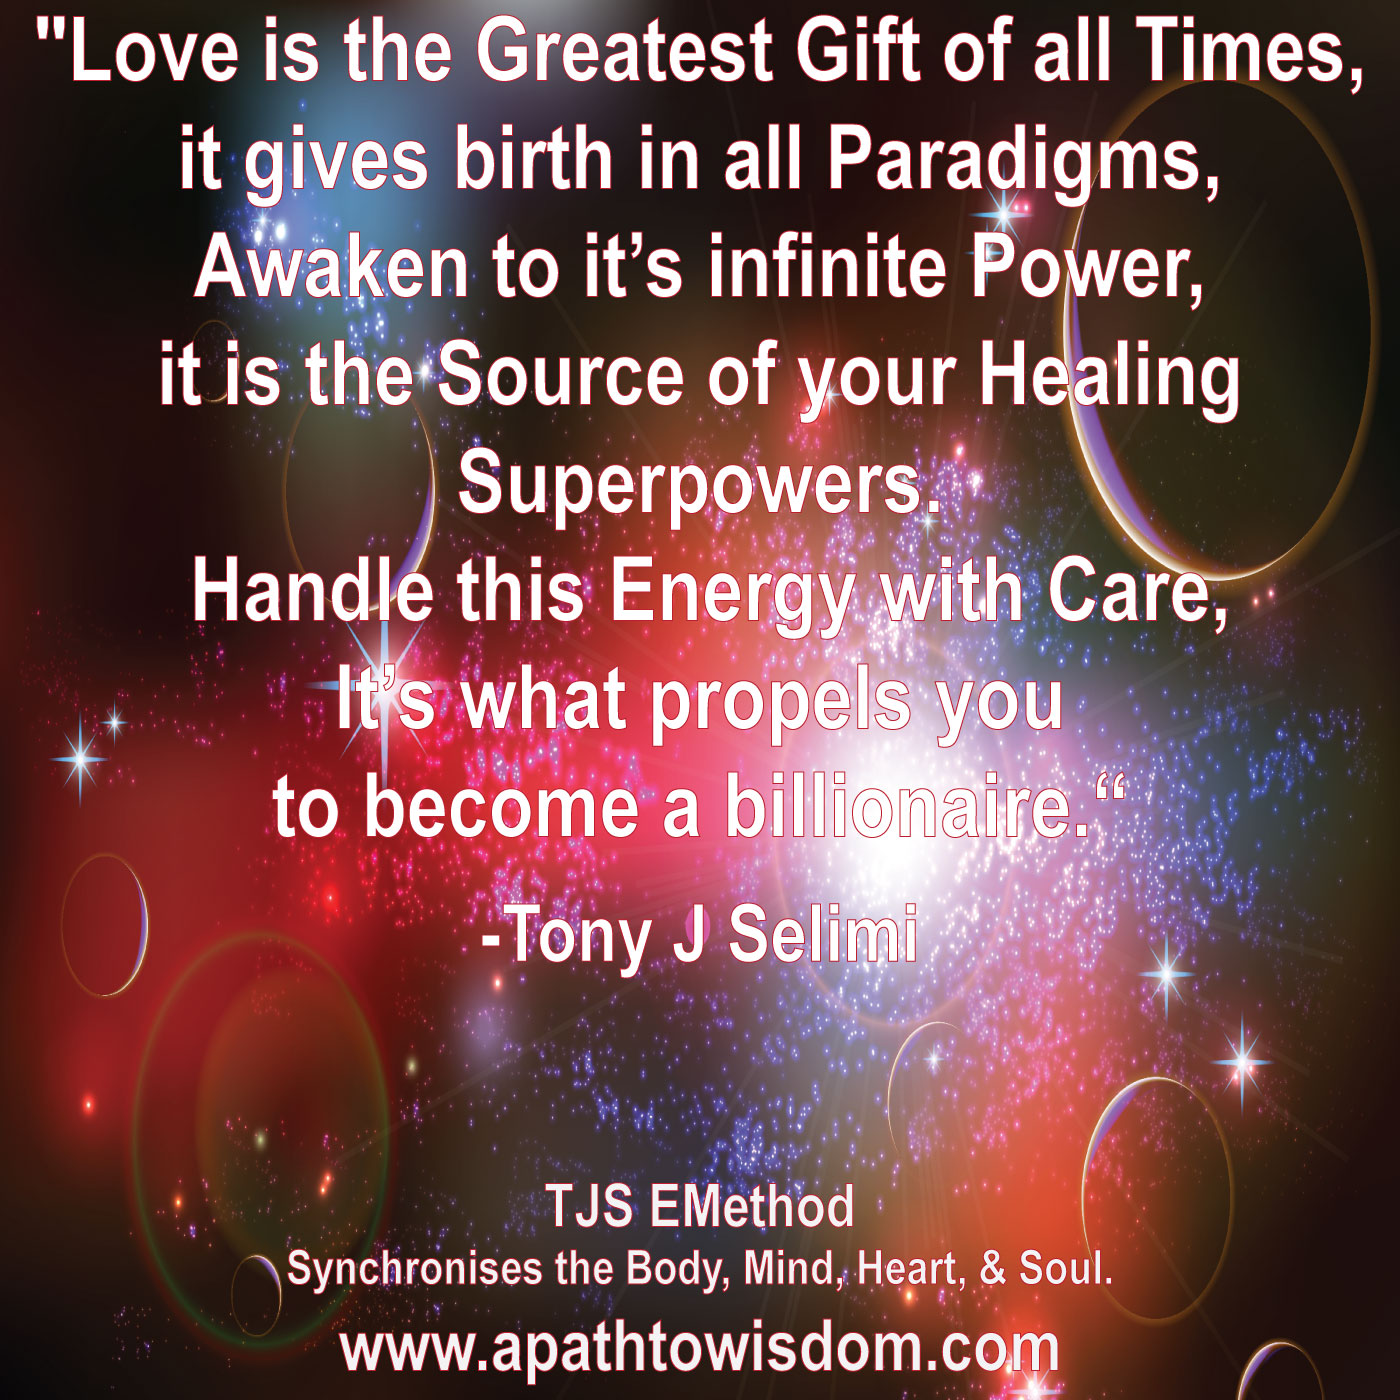 The-Power-of-Love-by-Tony-J-Selimi